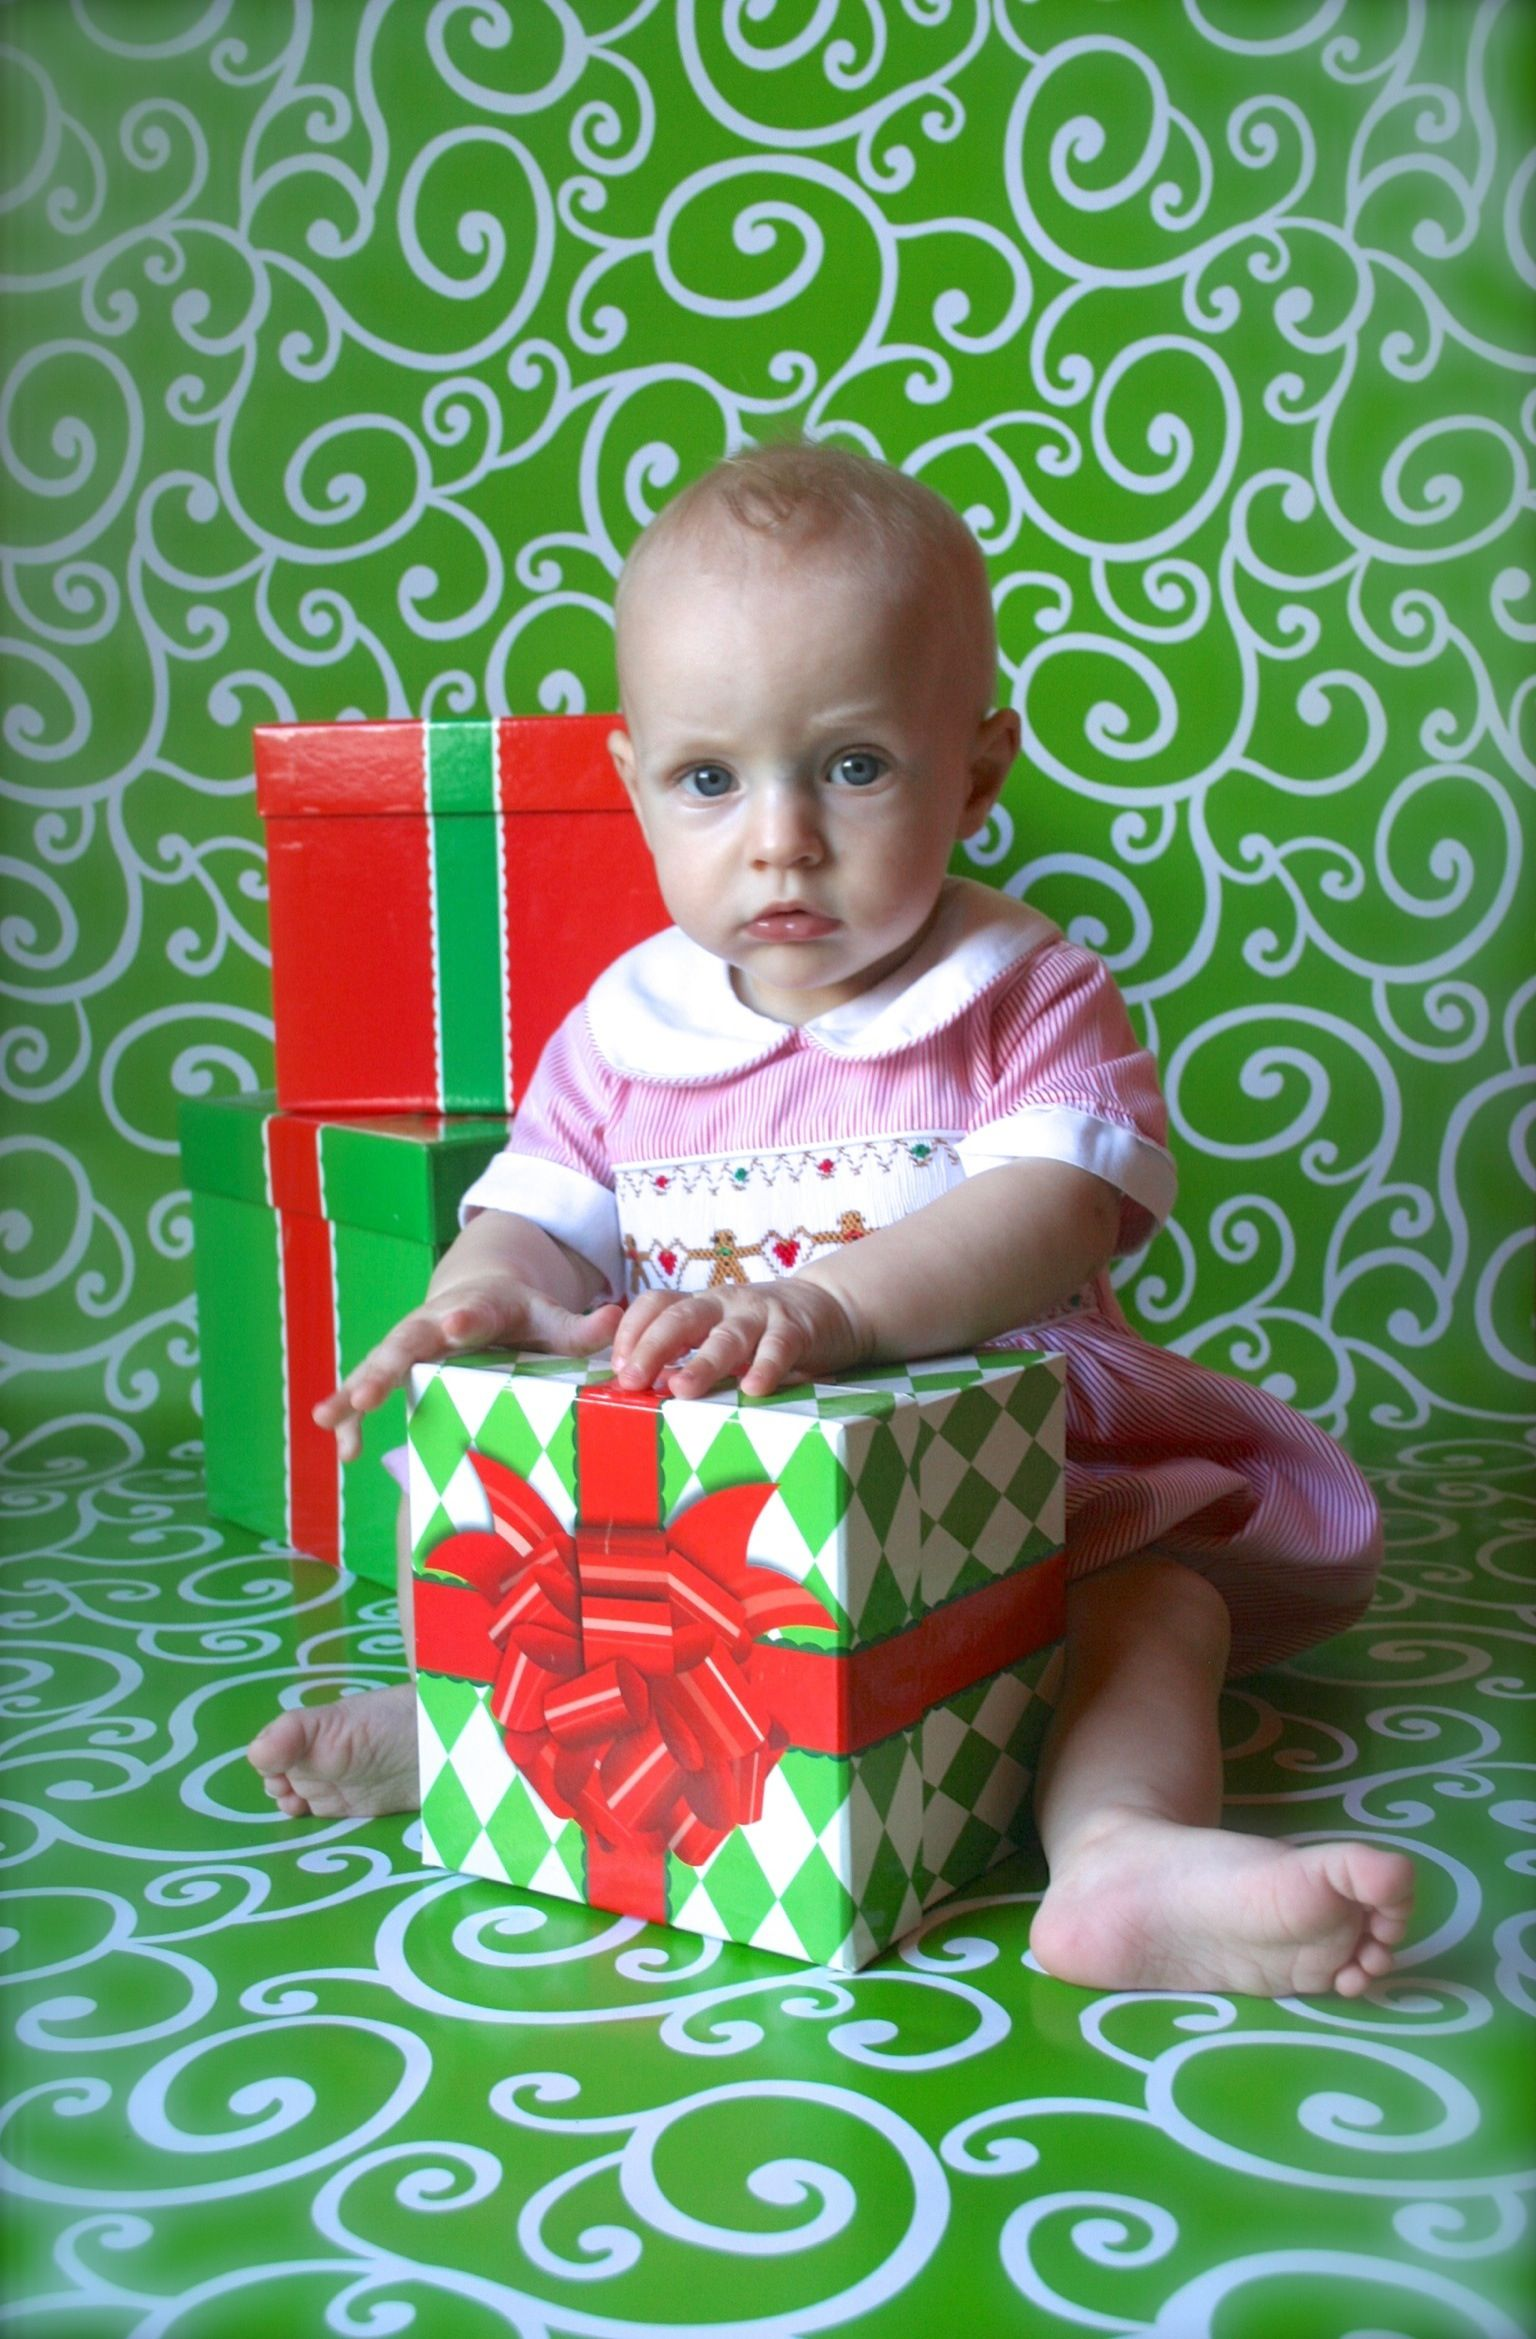 Wrapping paper backdrop easy baby picture idea for christmas baby easy baby picture idea for christmas baby picture ideas pinterest baby pictures picture ideas and photography solutioingenieria Choice Image